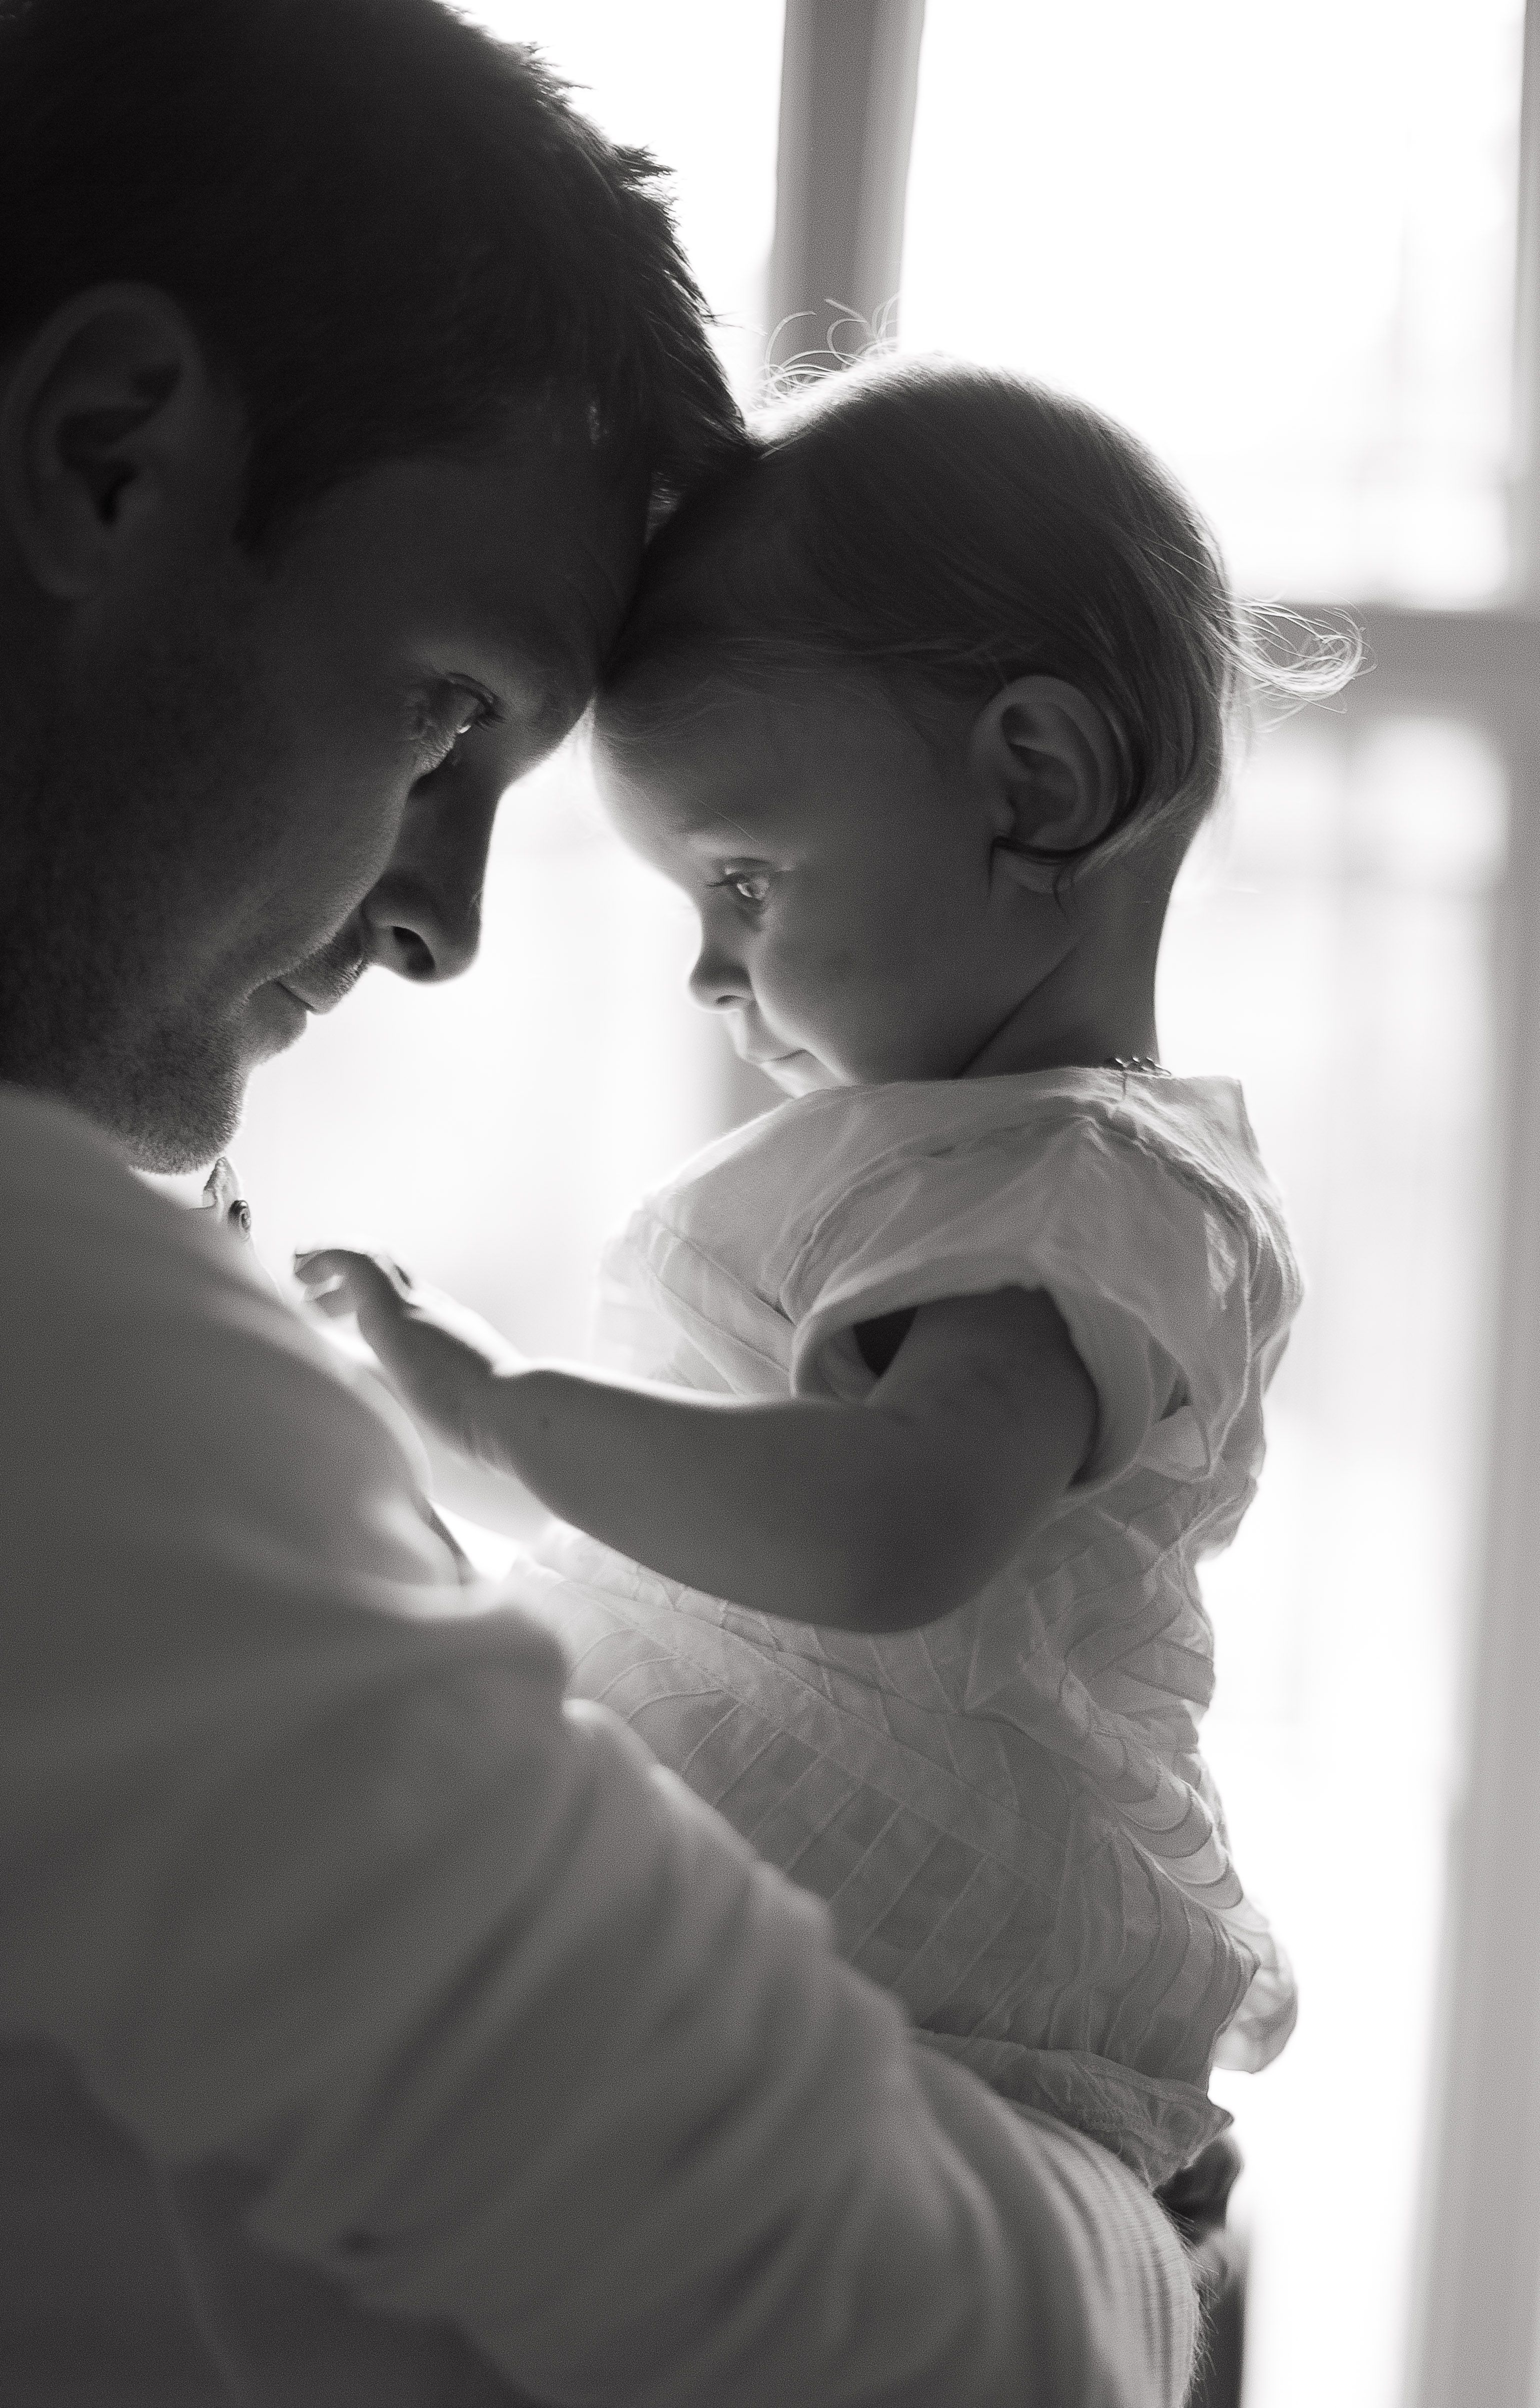 imgsrc.ru nudista 13 1000+ images about Photography - Baby/Child/Family on Pinterest | Perspective, Family photos and Children